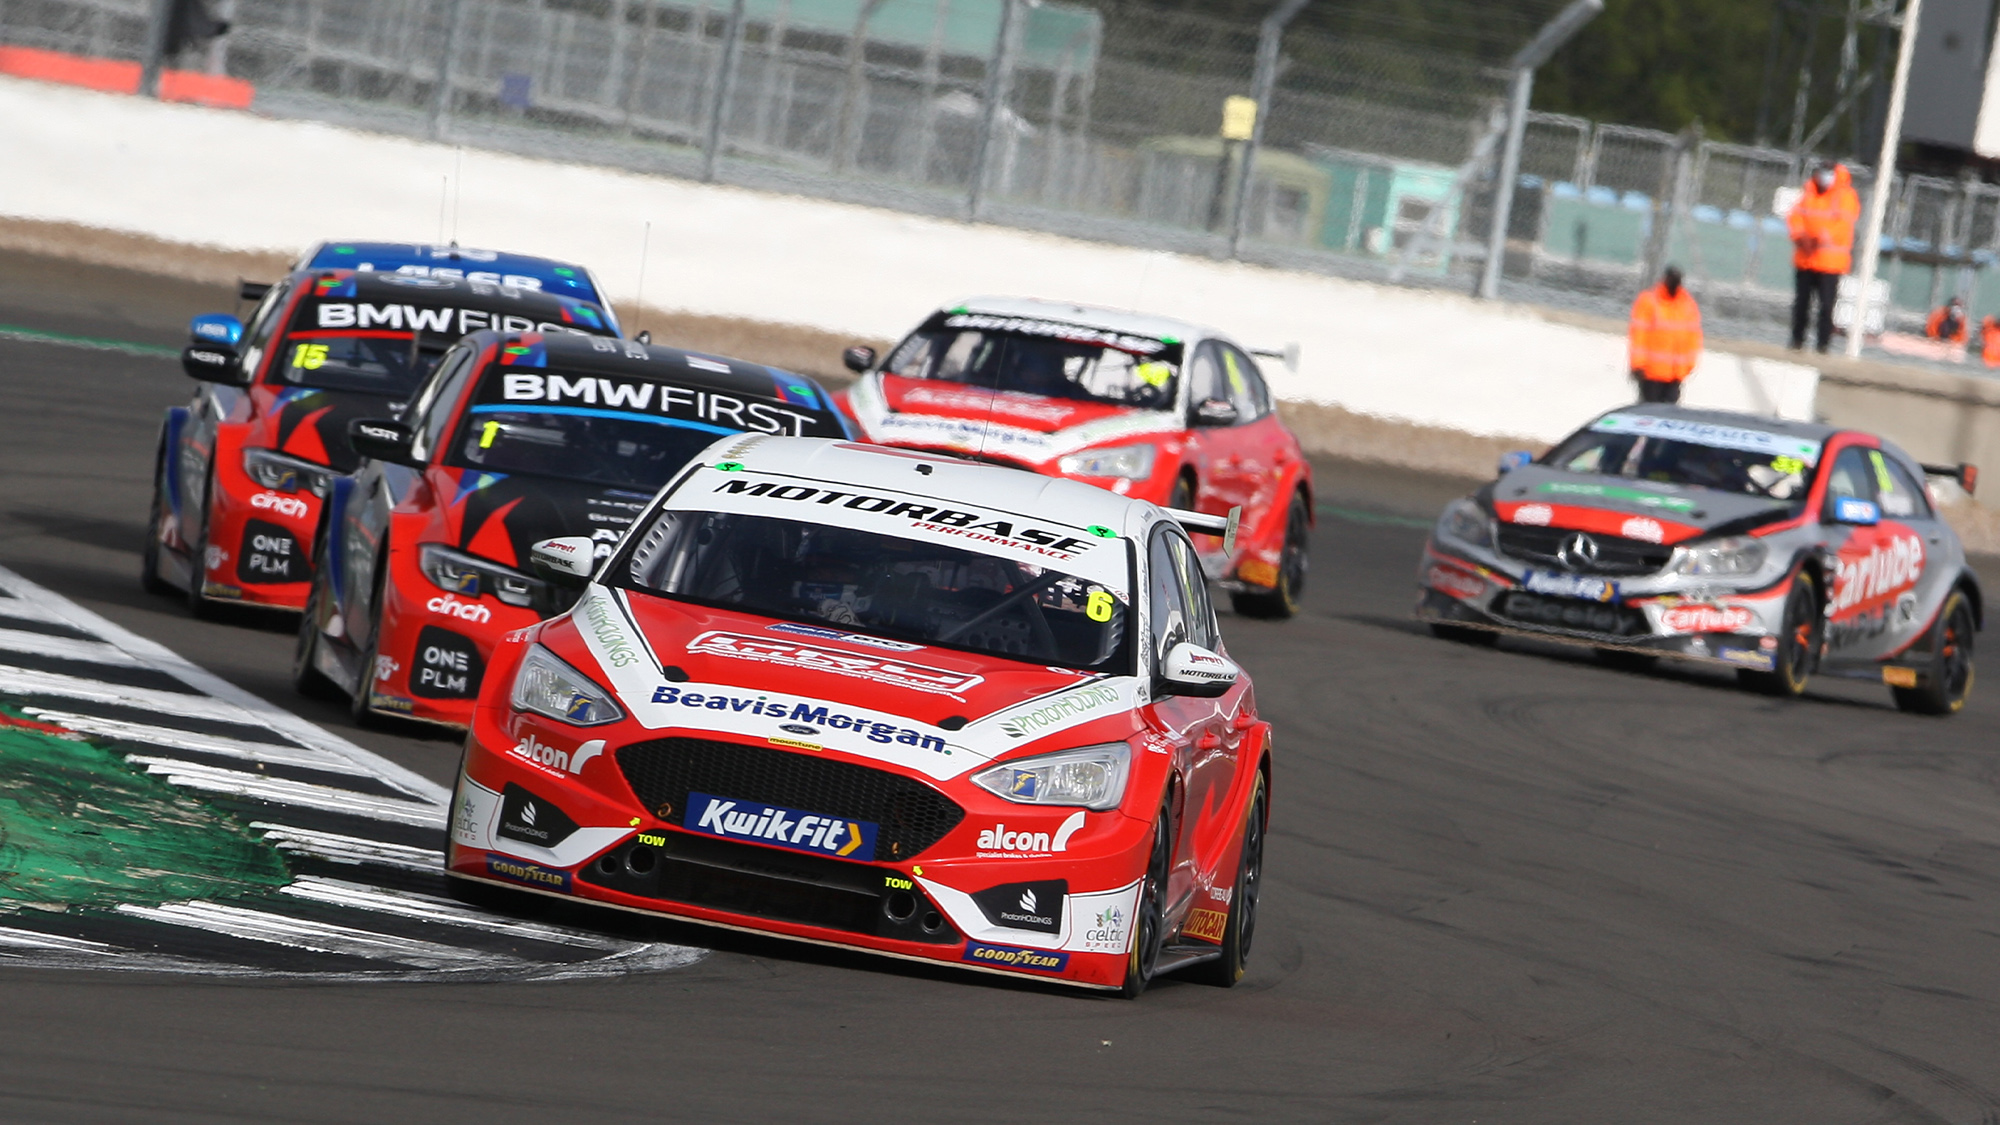 Rory Butcher ahead of Colin Turkington and Tom Oliphant at Silverstone in the 2020 BTCC Championship